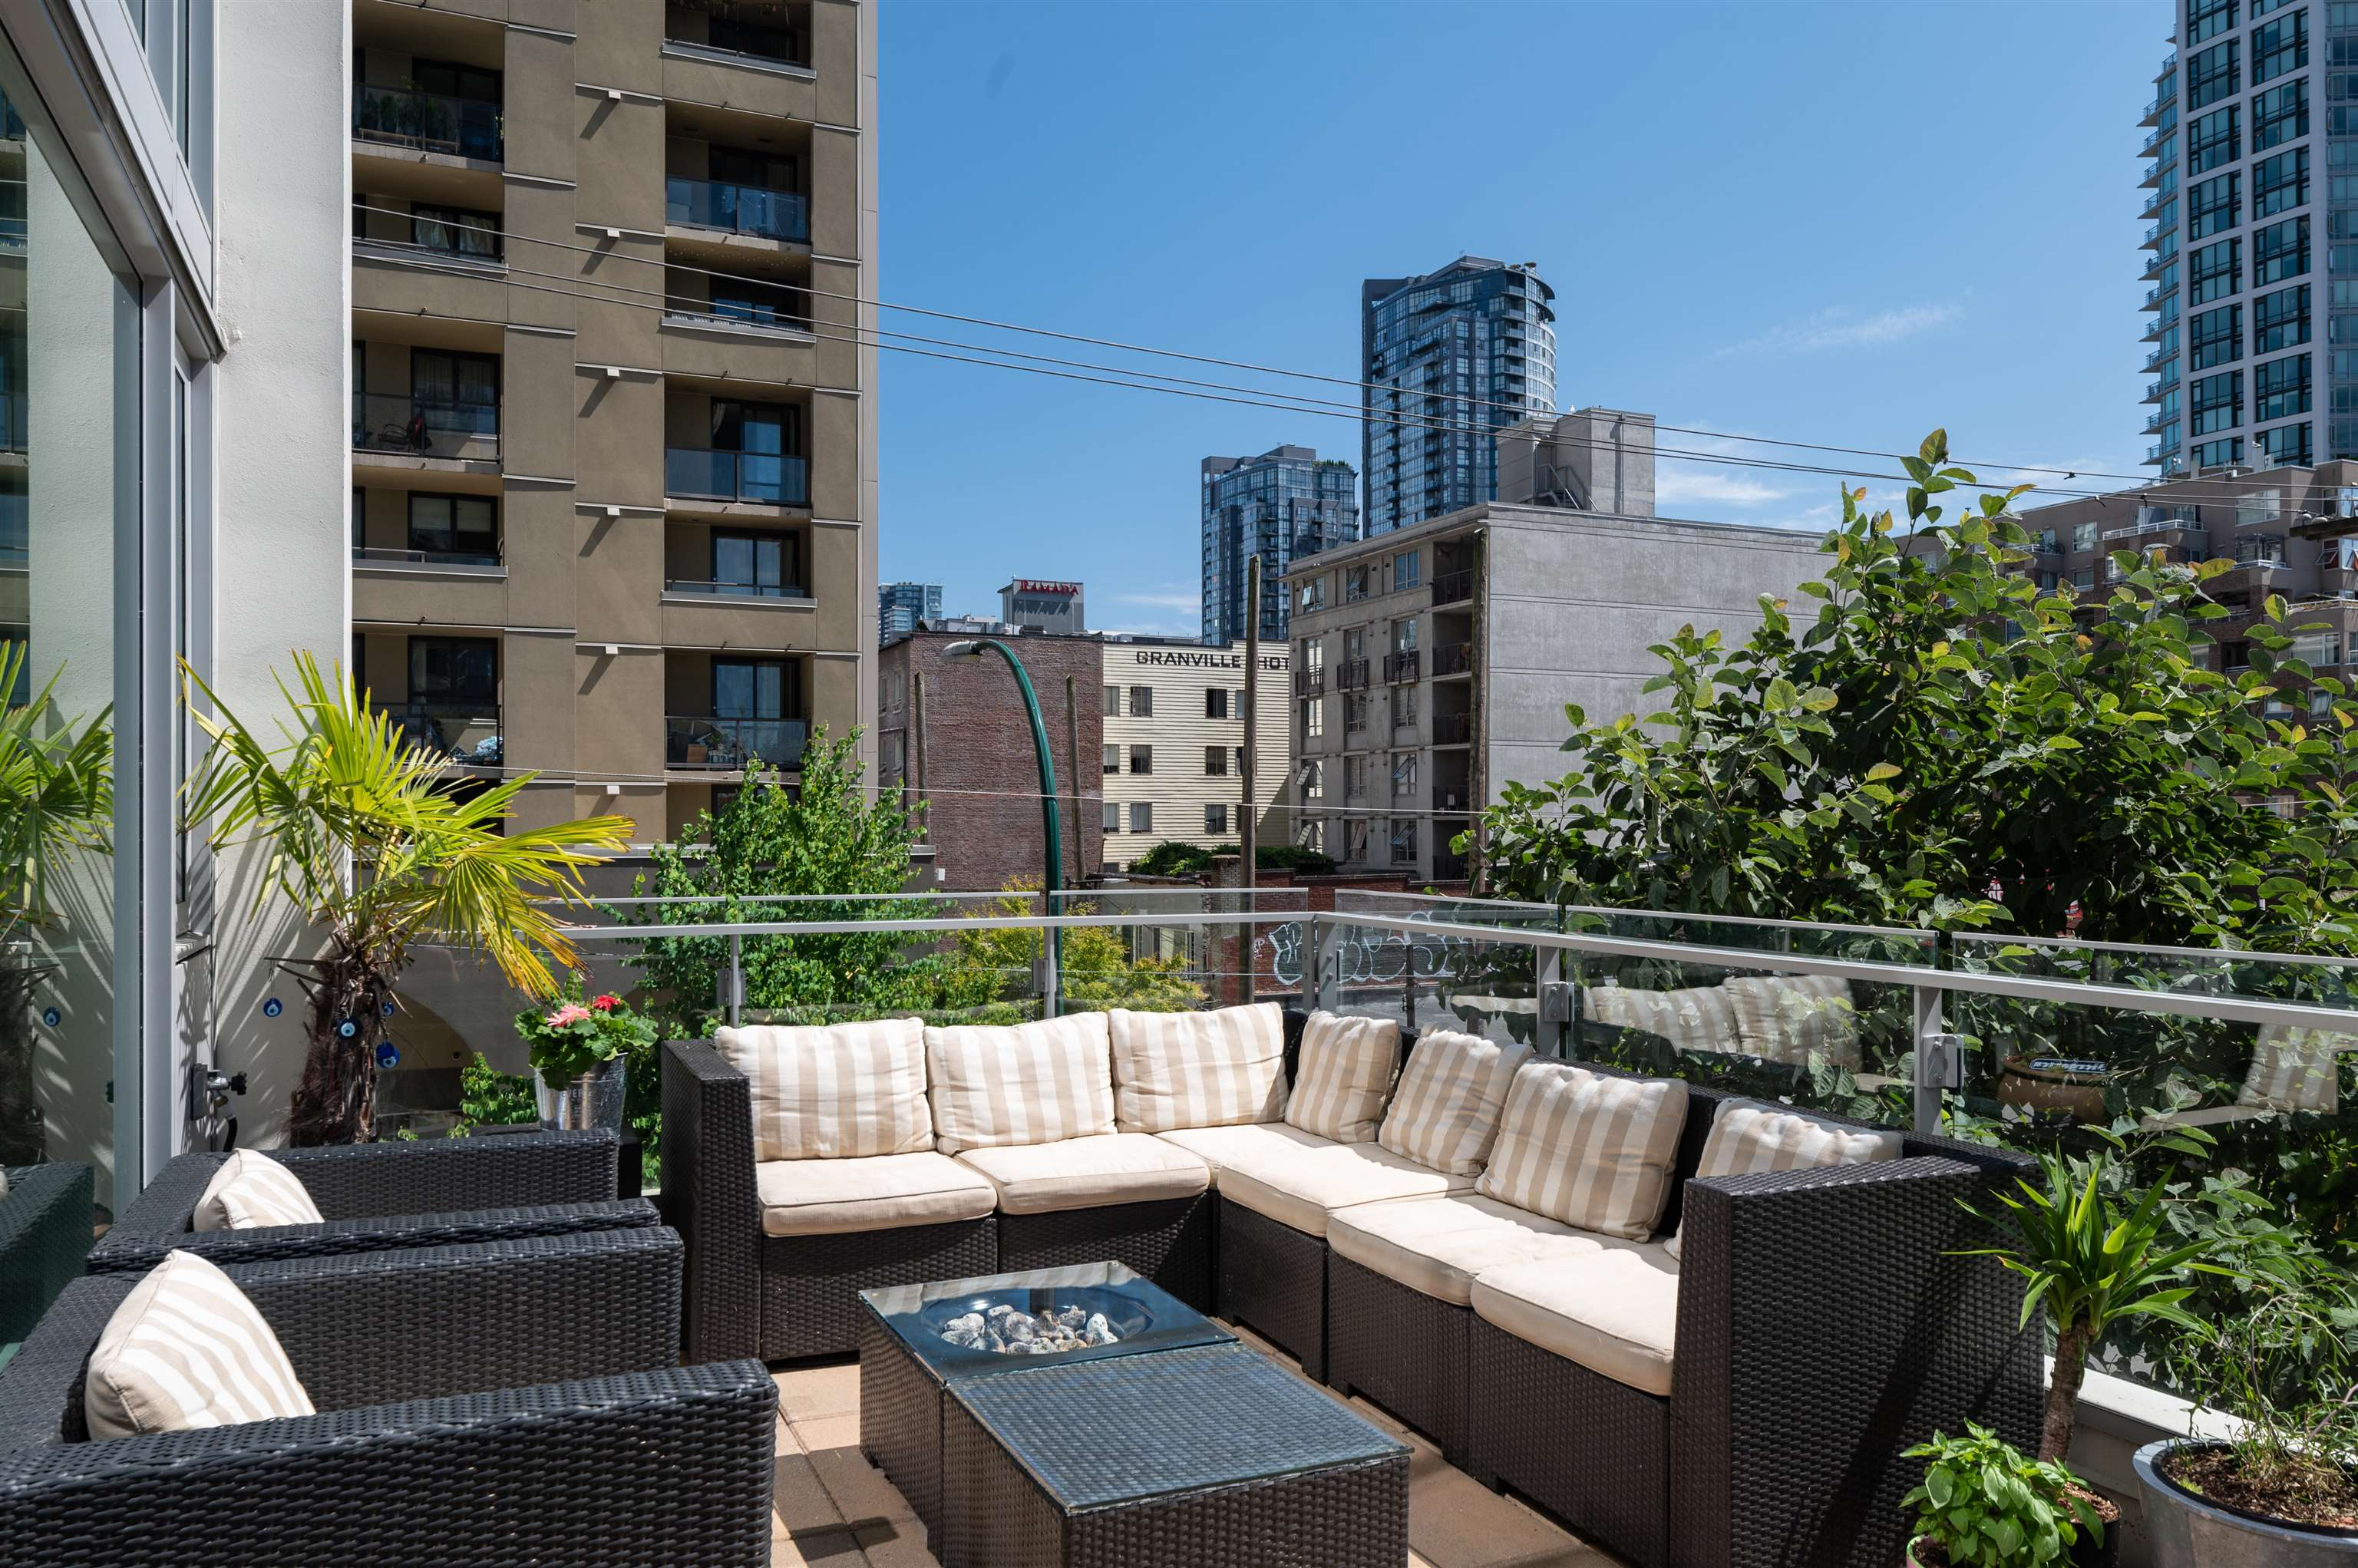 306 1351 CONTINENTAL STREET - Downtown VW Apartment/Condo for sale, 2 Bedrooms (R2617899) - #15